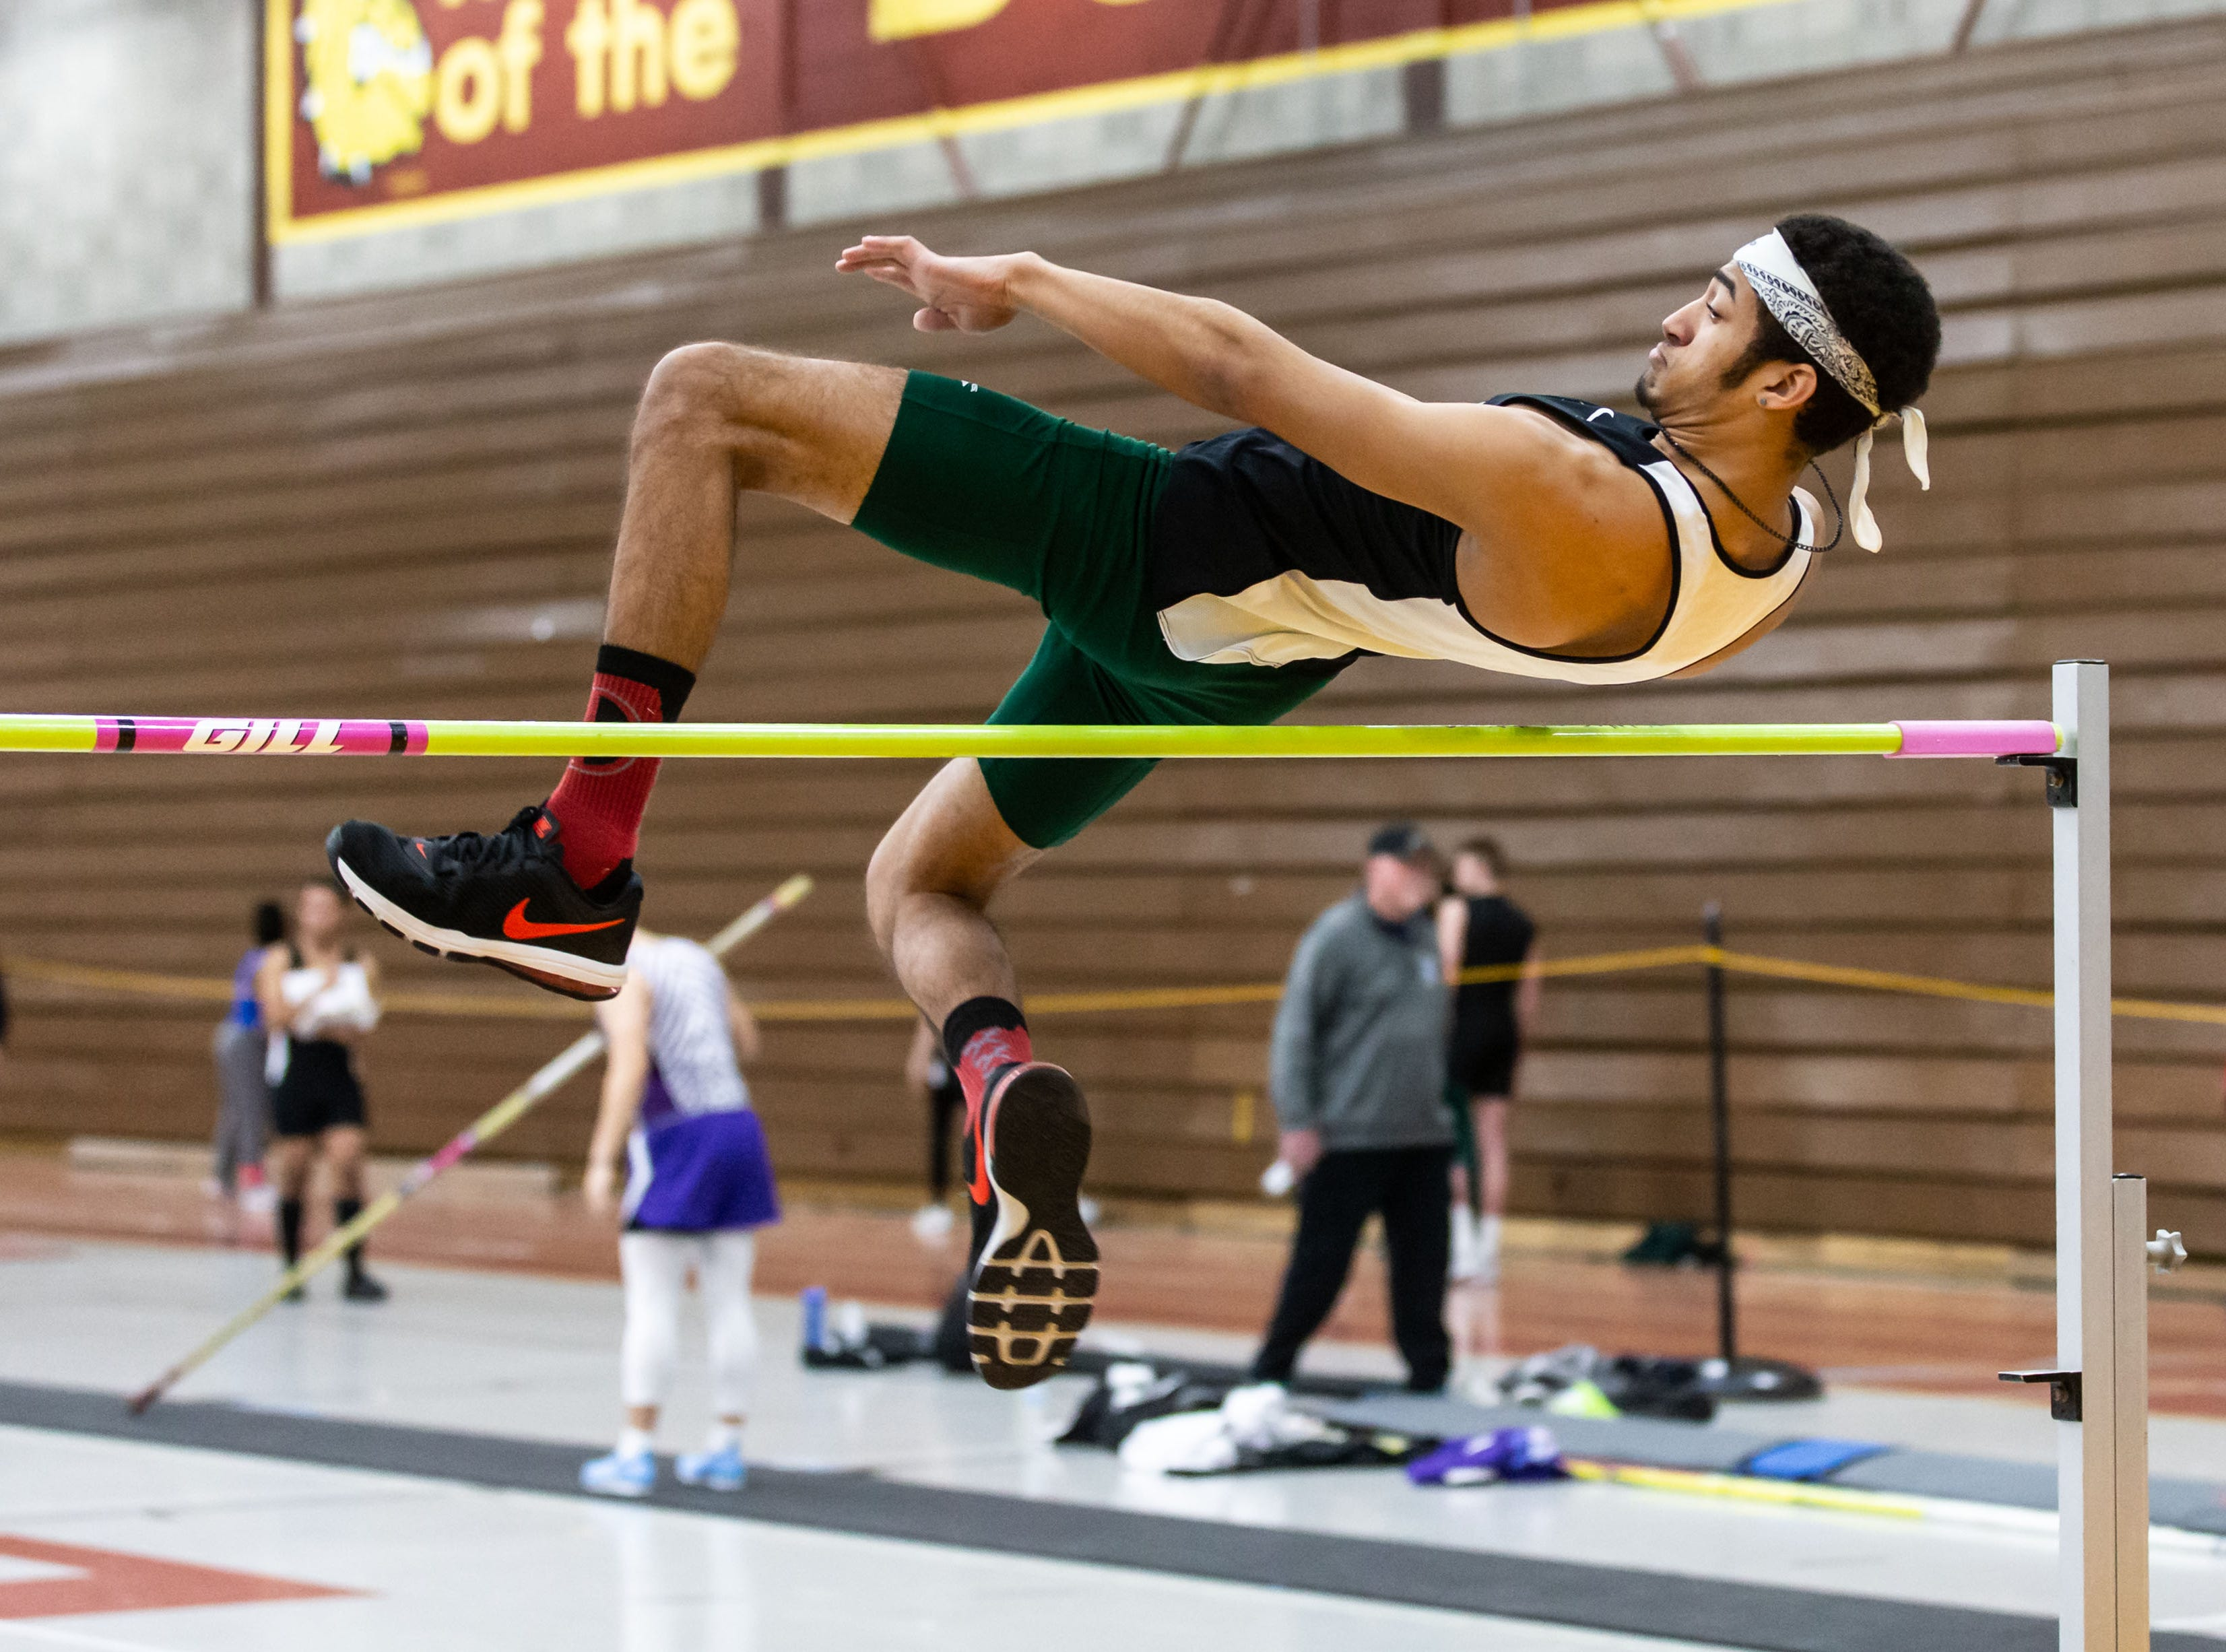 West Allis Nathan Hale's Darius Clark competes on the high jump at the Reinhard Bulldog Relays hosted by West Allis Central on Friday, March 15, 2019.